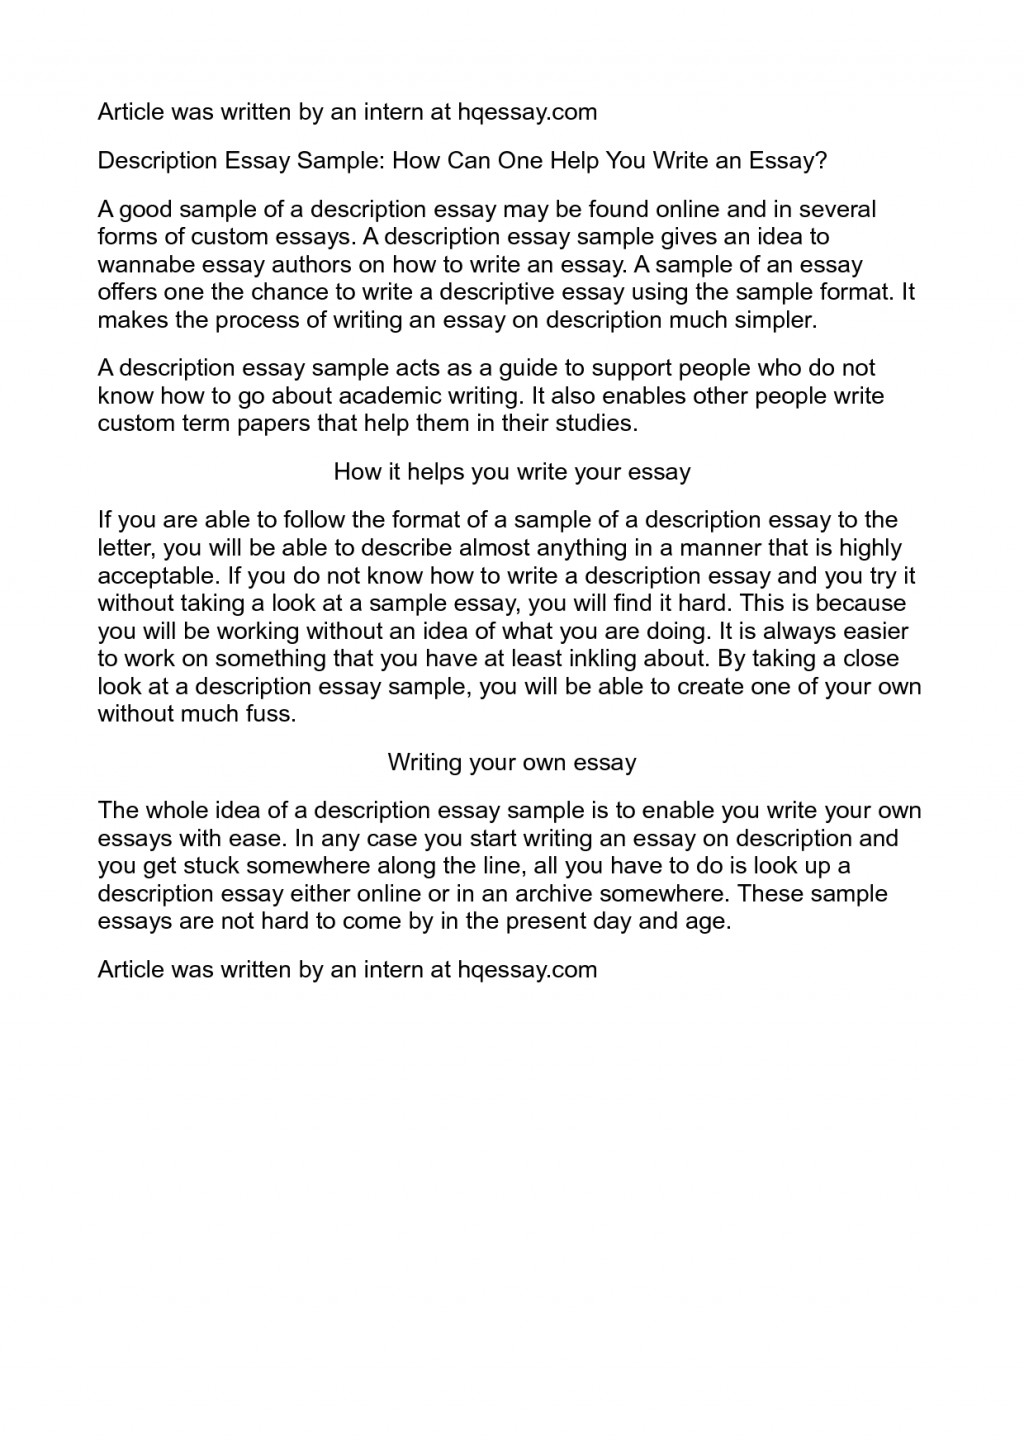 013 Faf9yl26hl Essay Example How To Write Magnificent Descriptive O Level A About Person Large